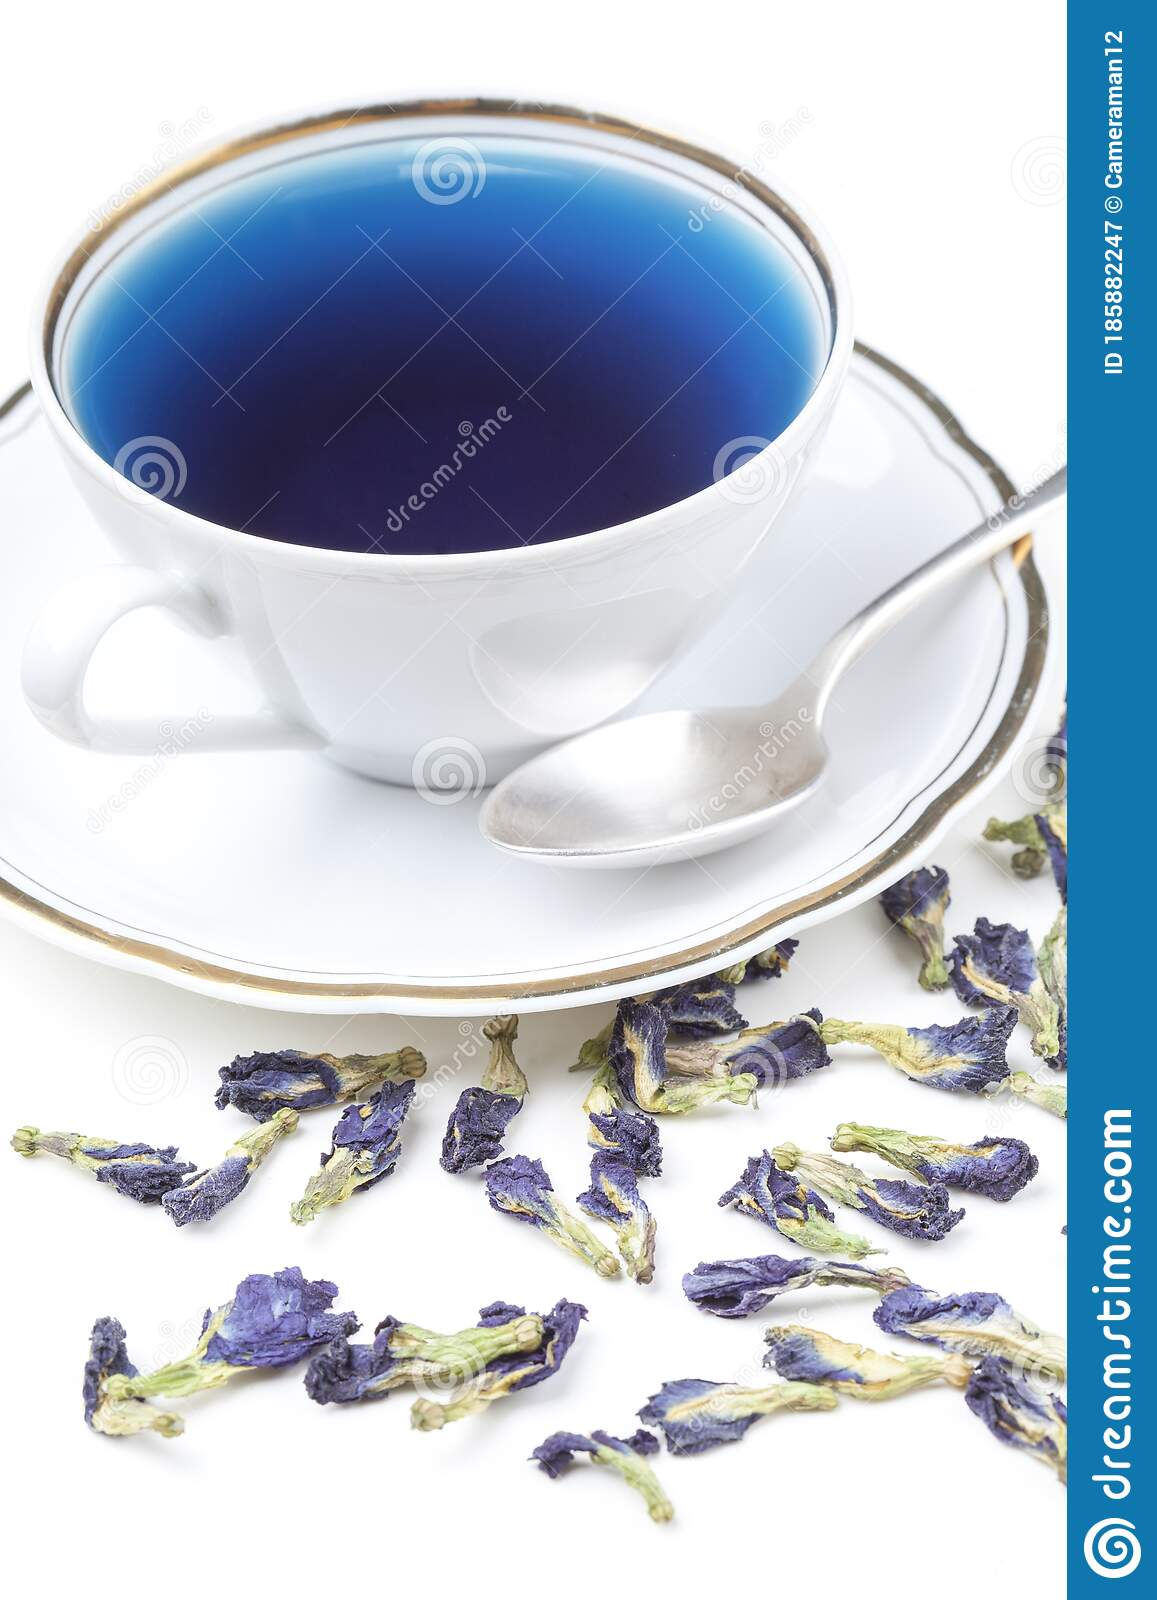 Order online Purple Chang Shu Tea: where to buy, how much it costs, Real Consumer Reviews